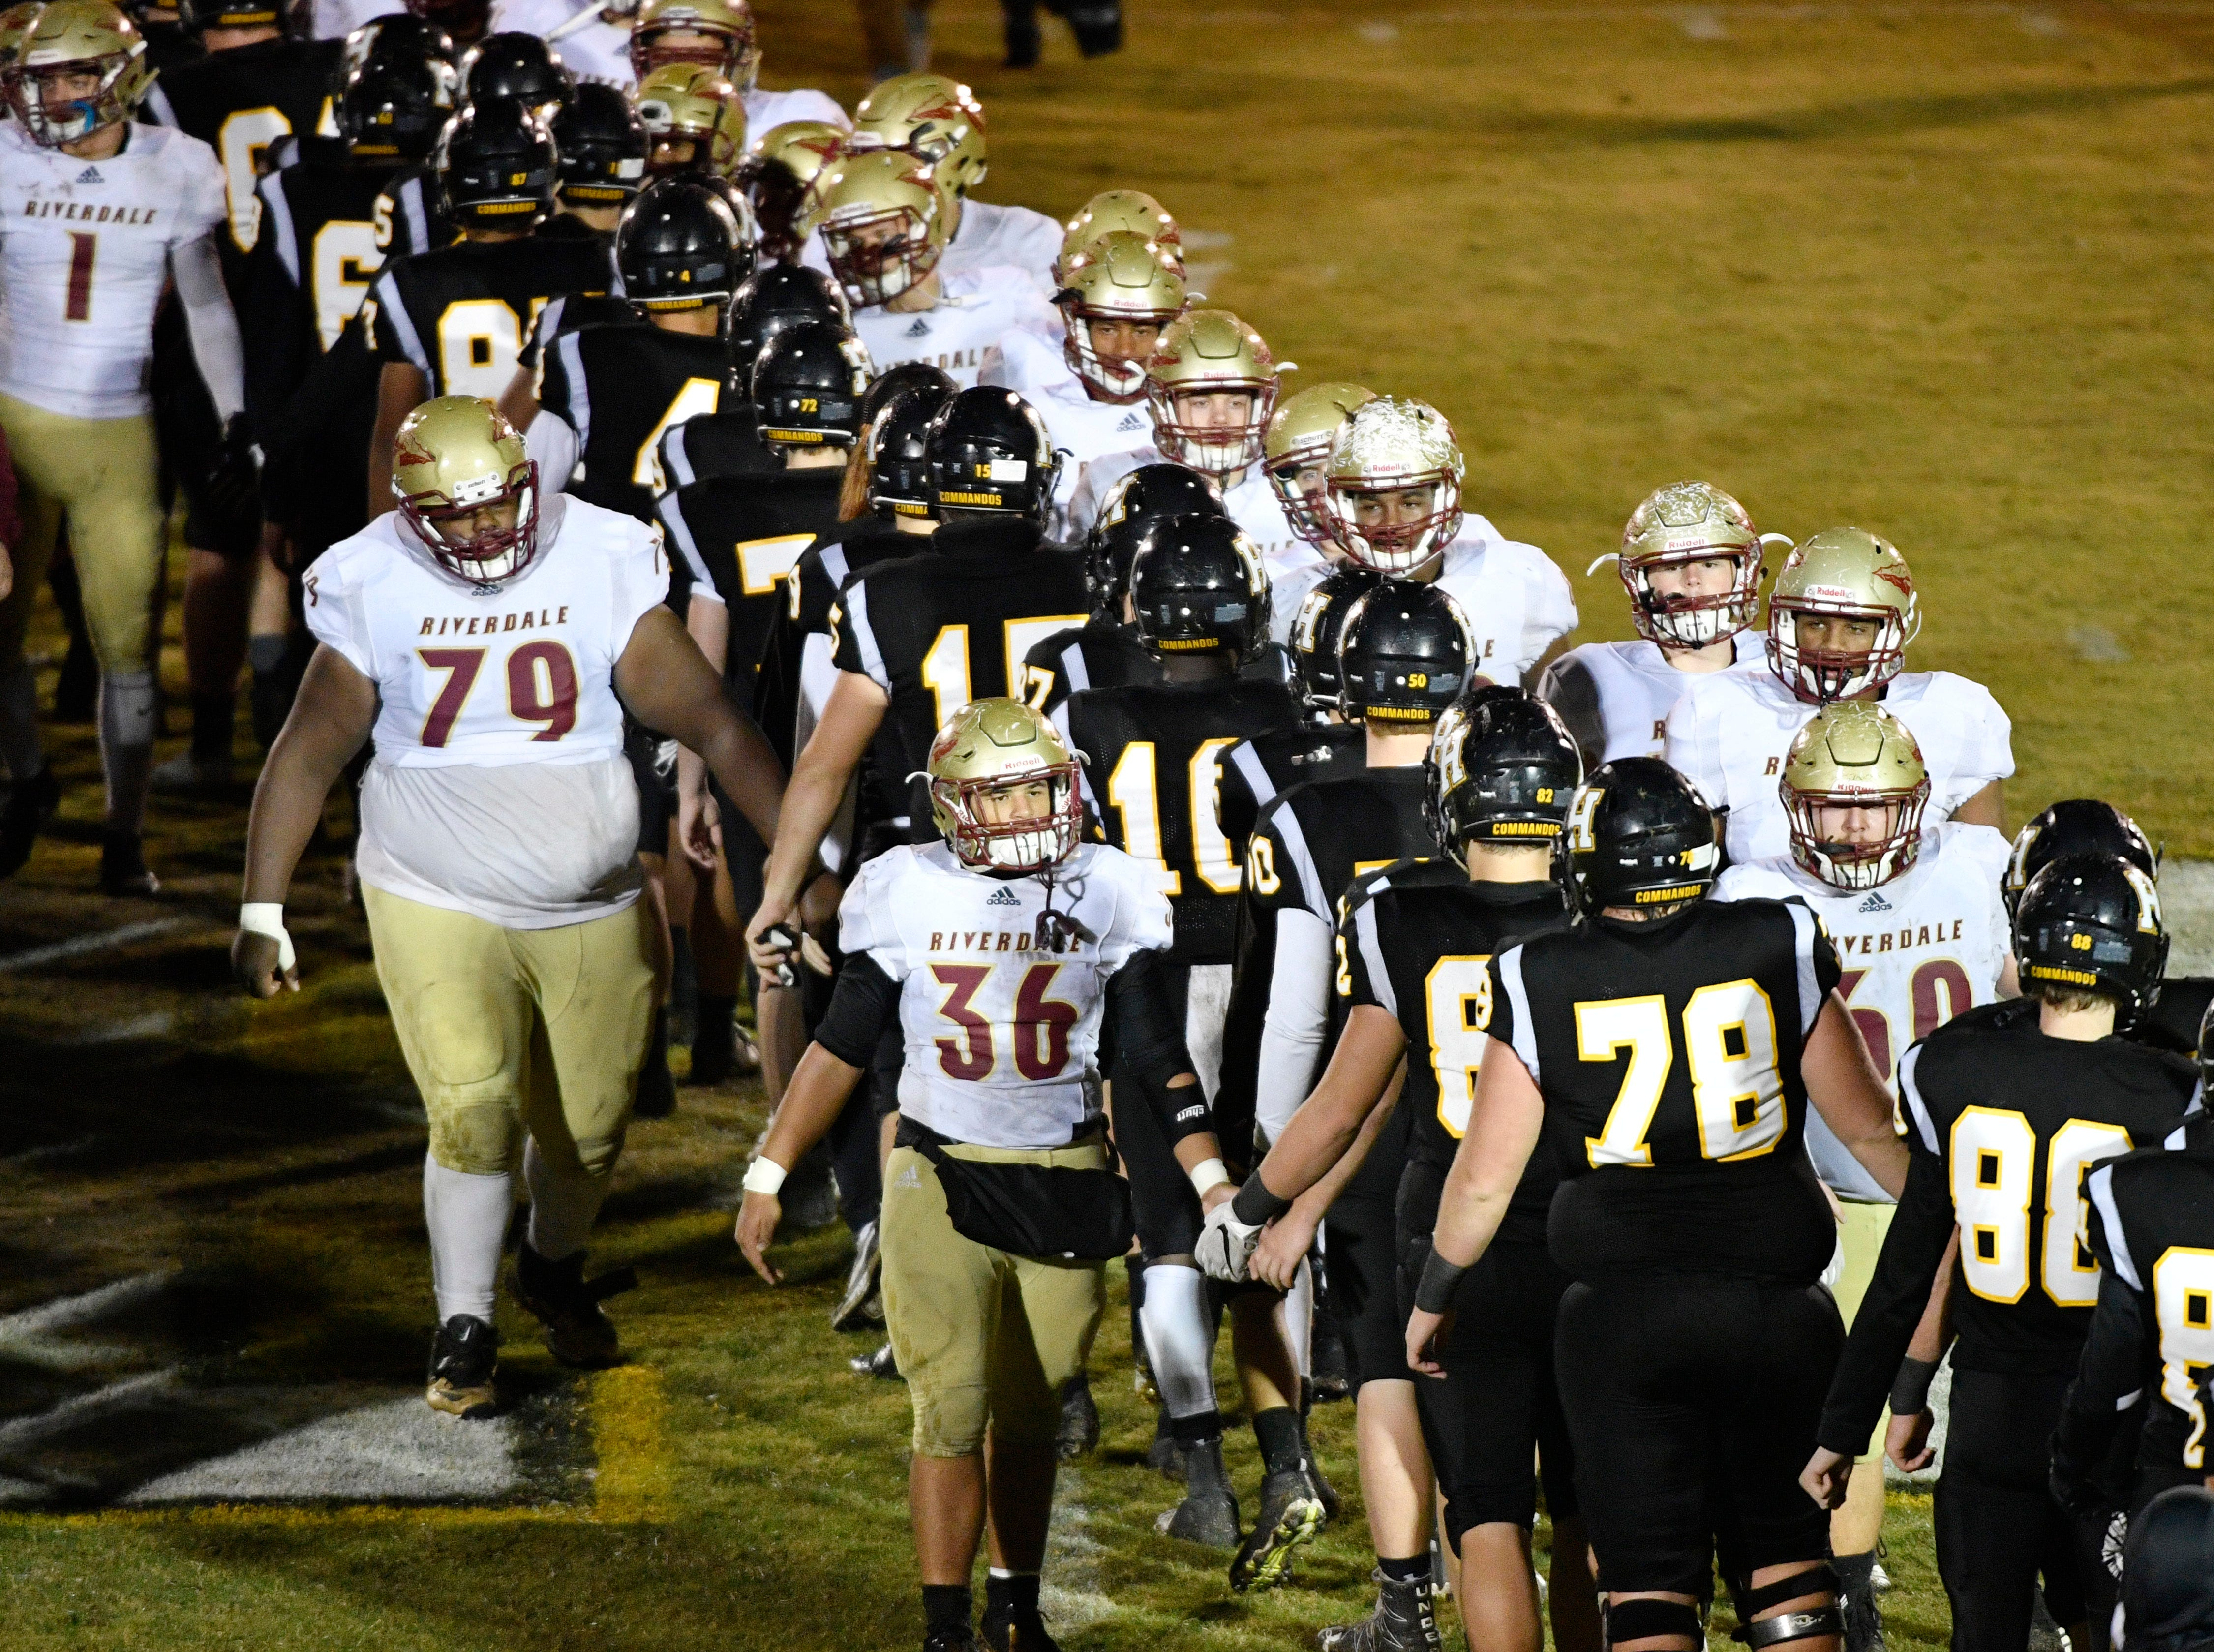 Riverdale and Hendersonville shake hands after Hendersonville won 23-14